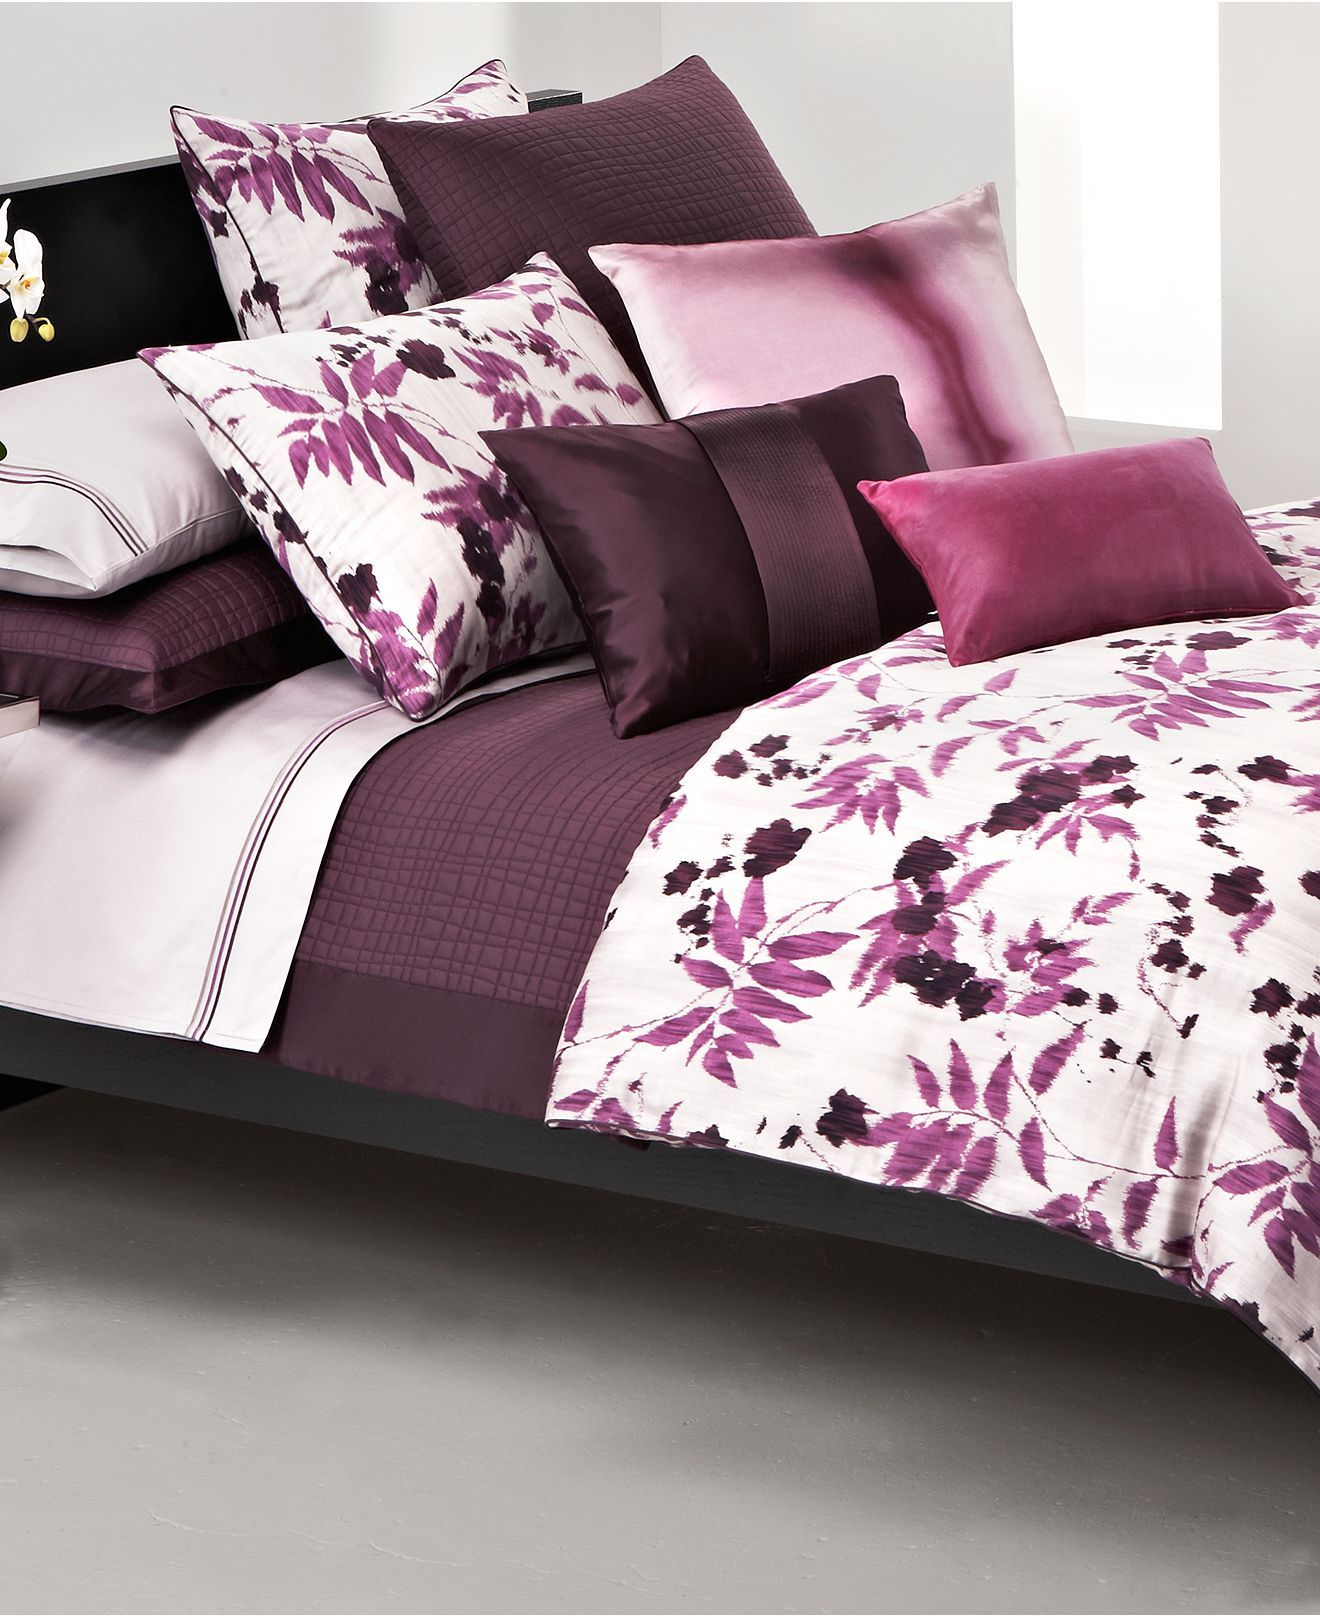 Awesome Hugo Boss Bedding Botanical Collection Bedding Collections Bed u Bath Macy us